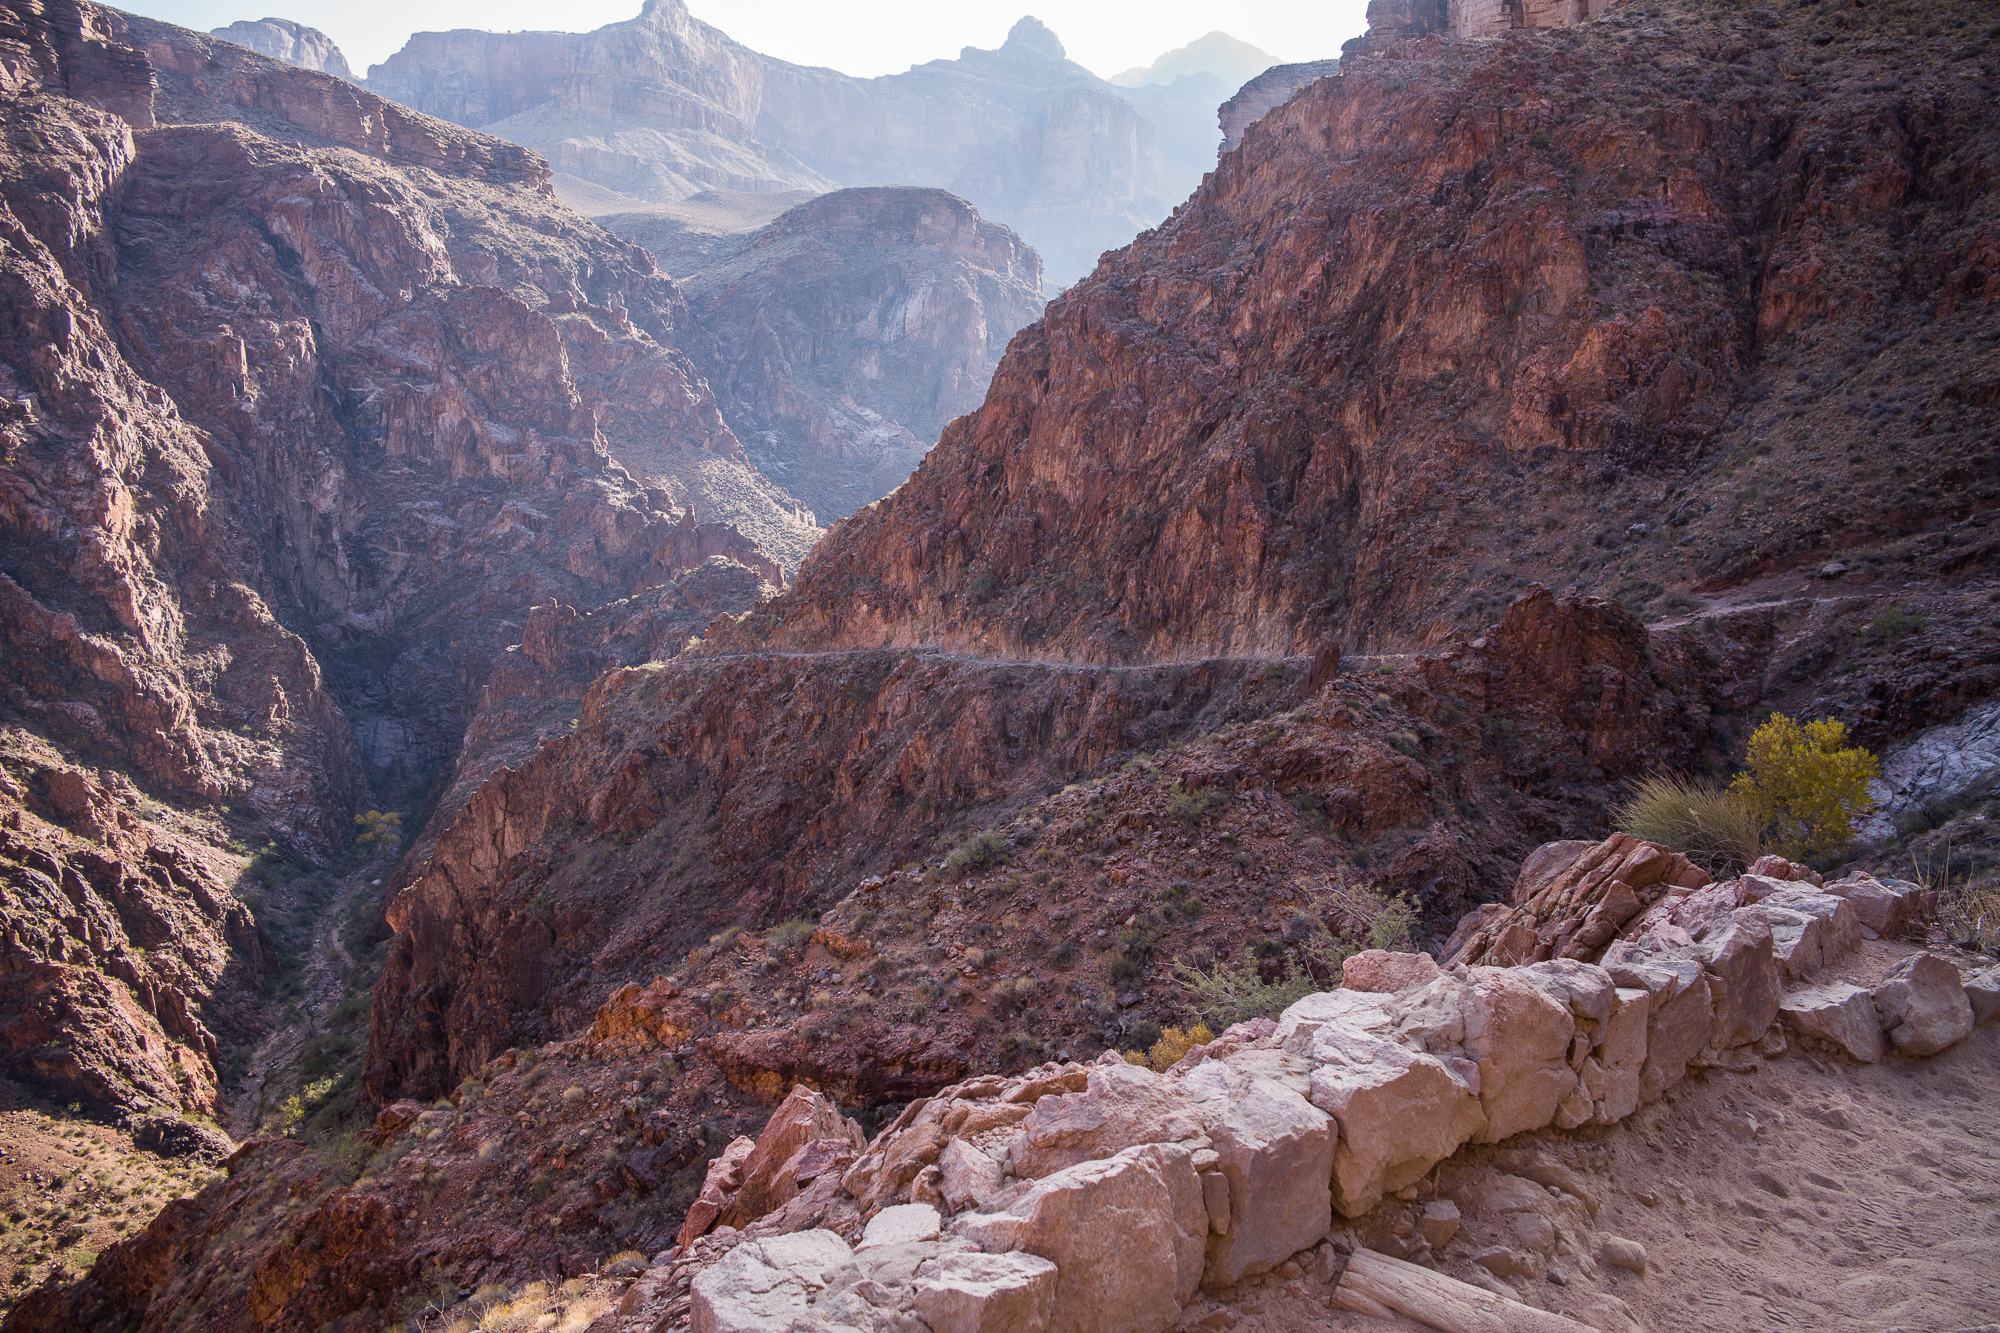 Looking back on the Bright Angel Trail